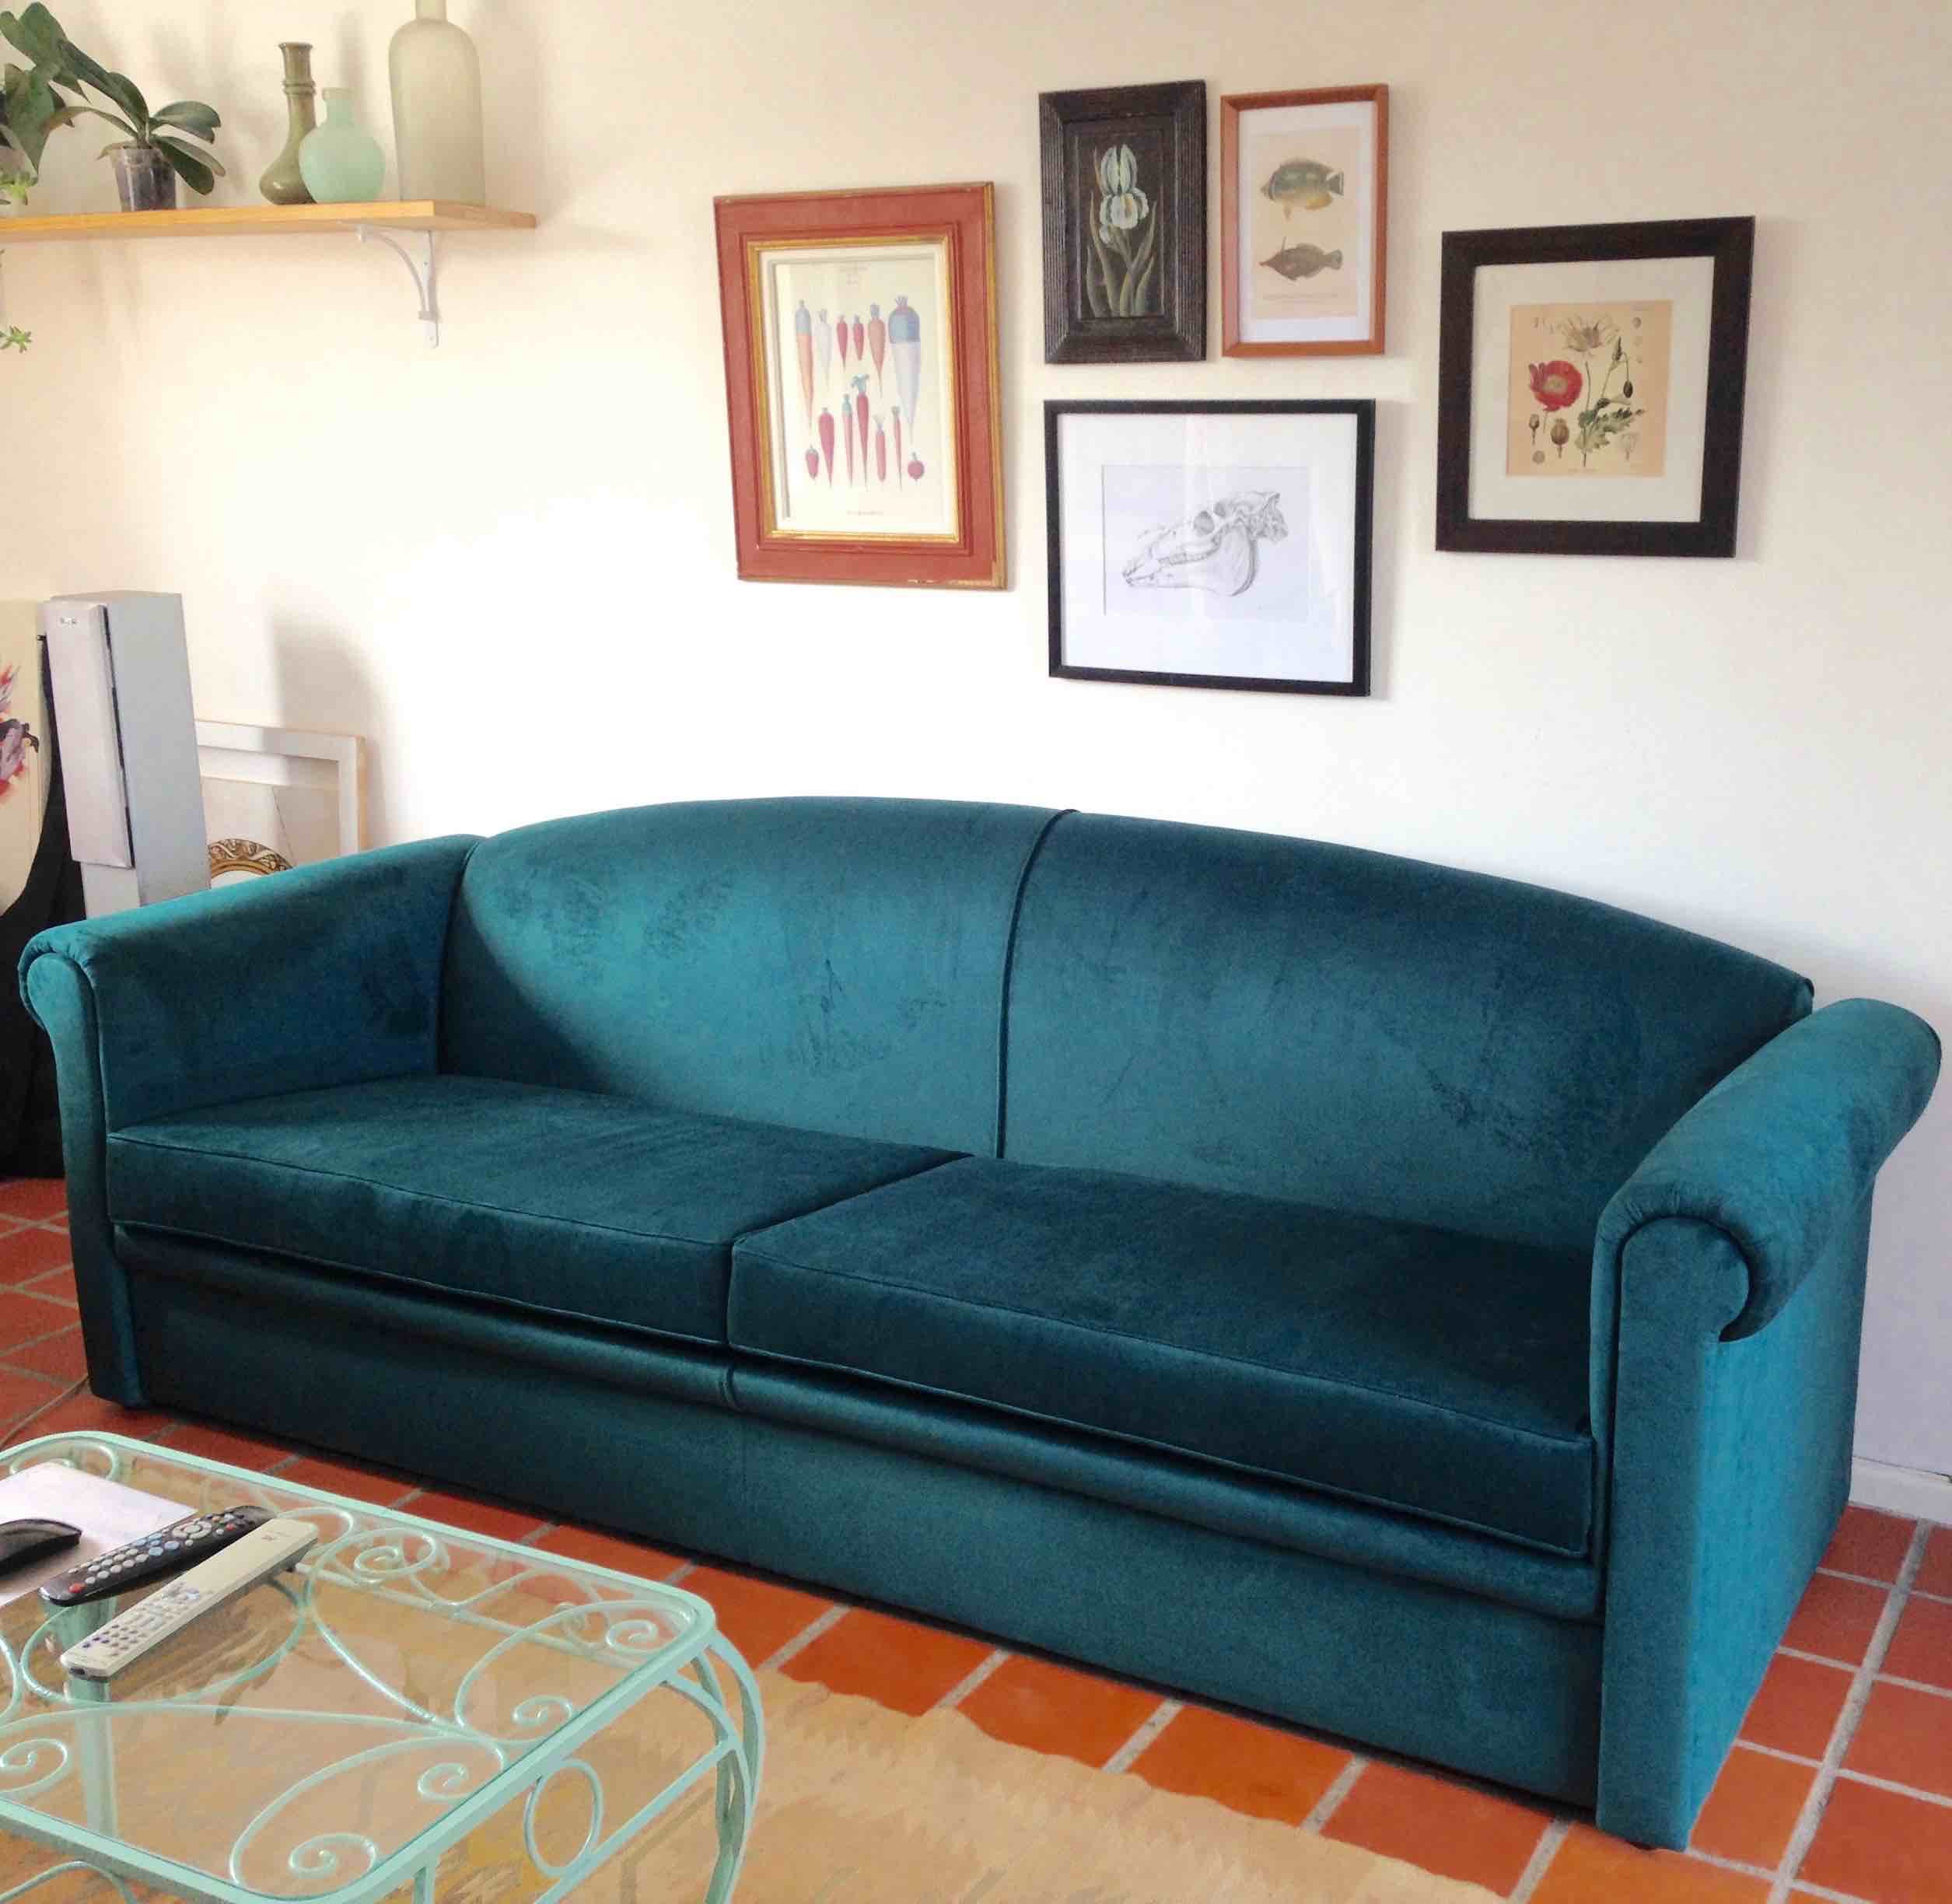 Reupholstering a Couch with Velvet Upholstery Cape Town